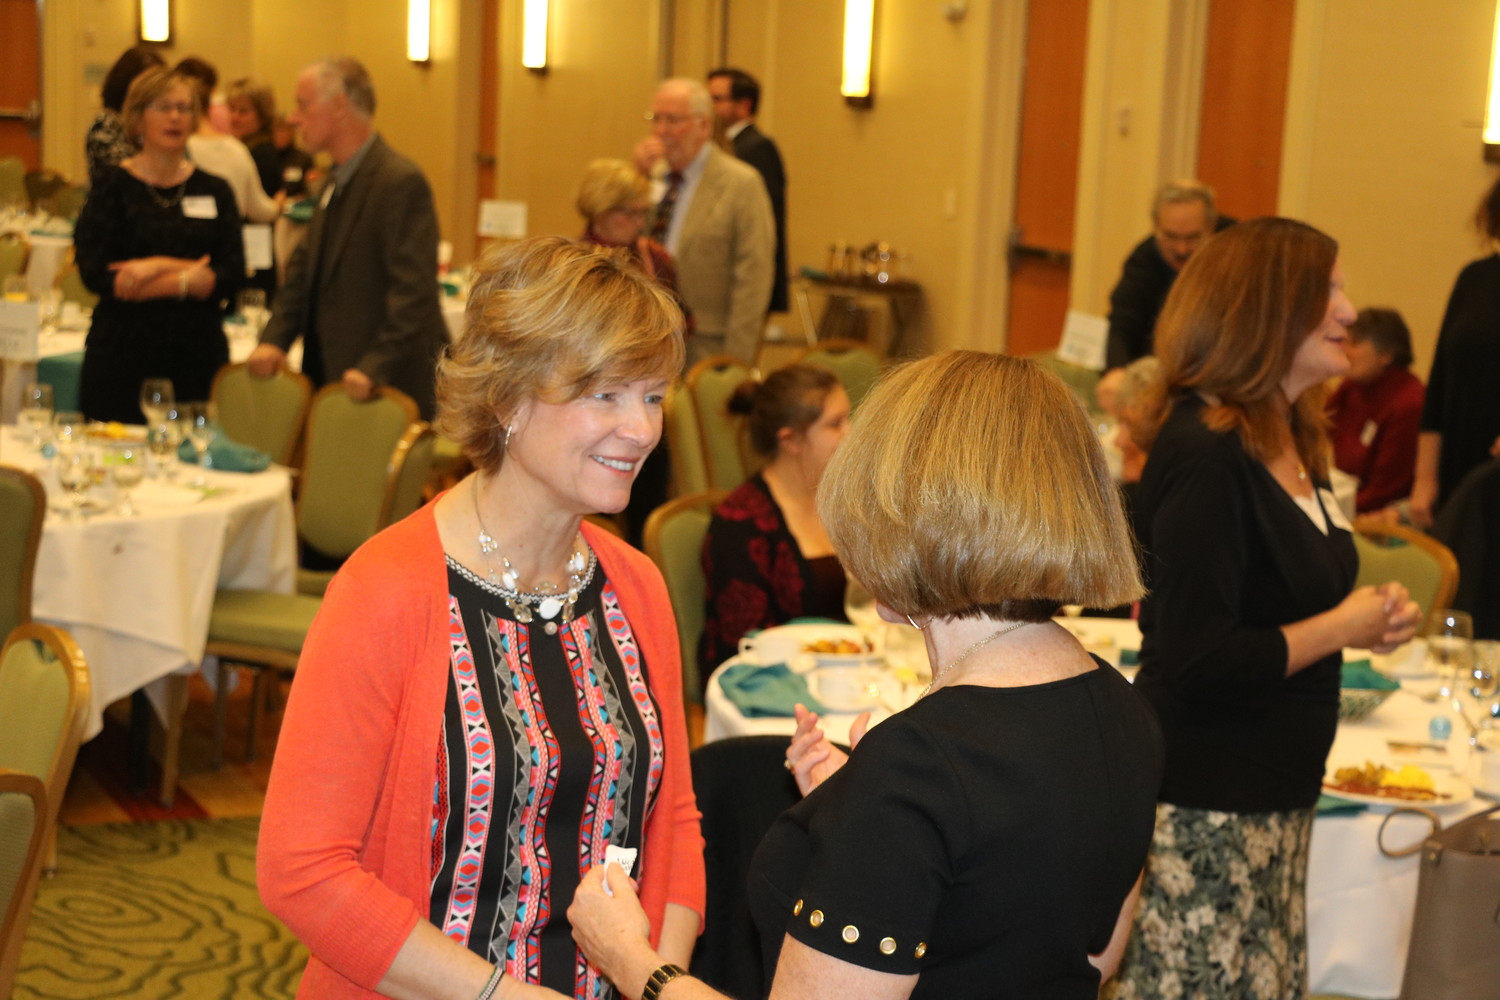 Christine White visits with friends after the Celebrate Women of Jefferson County event on Nov. 17 at the Denver Marriott West.